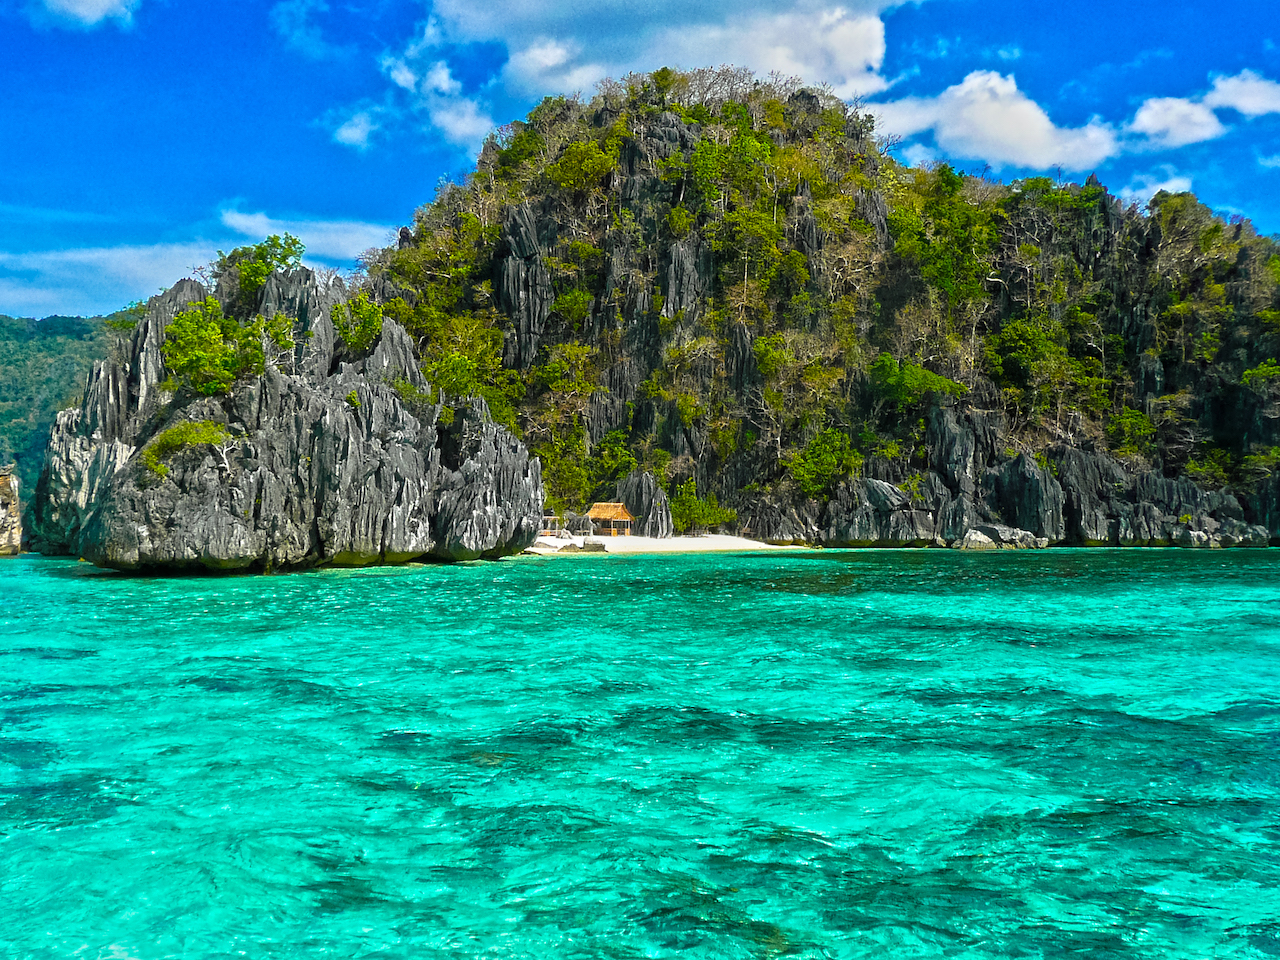 In Photos: 8 Natural Wonders You Can't Miss in the Philippines